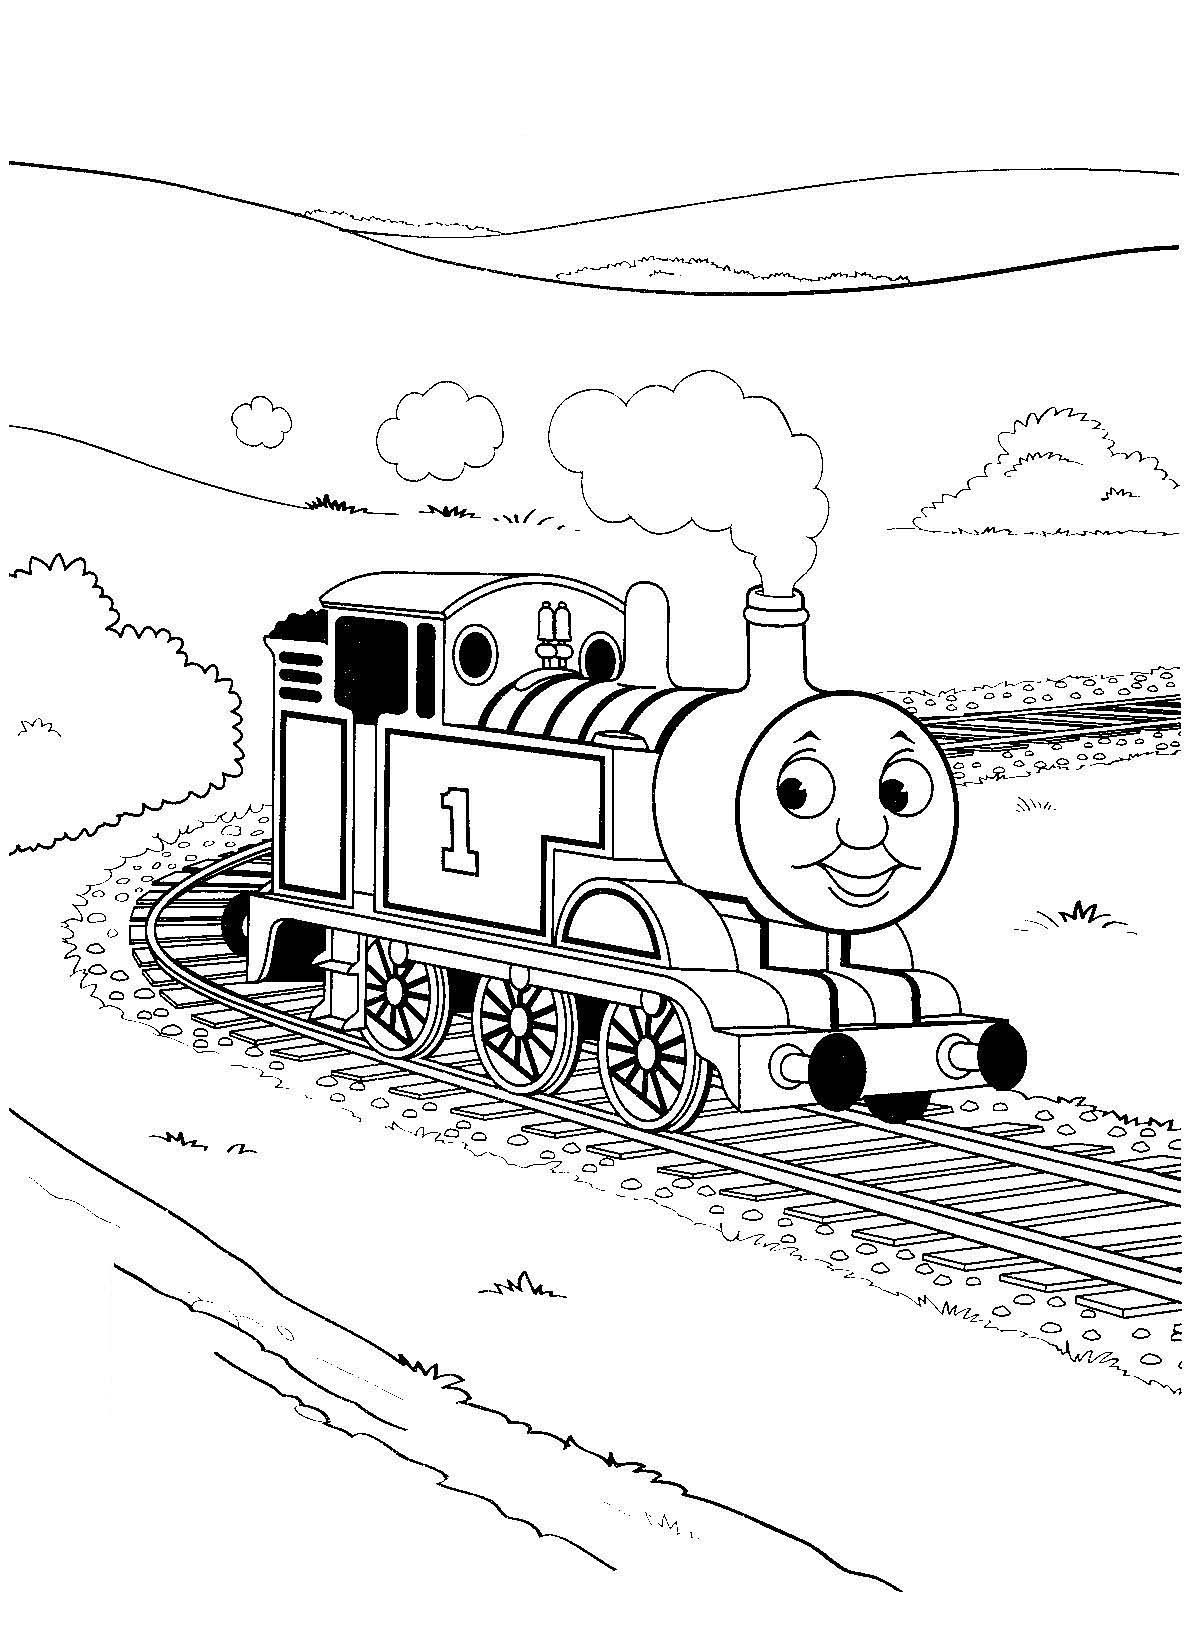 Thomas the tank engine coloring pages to download and print for free